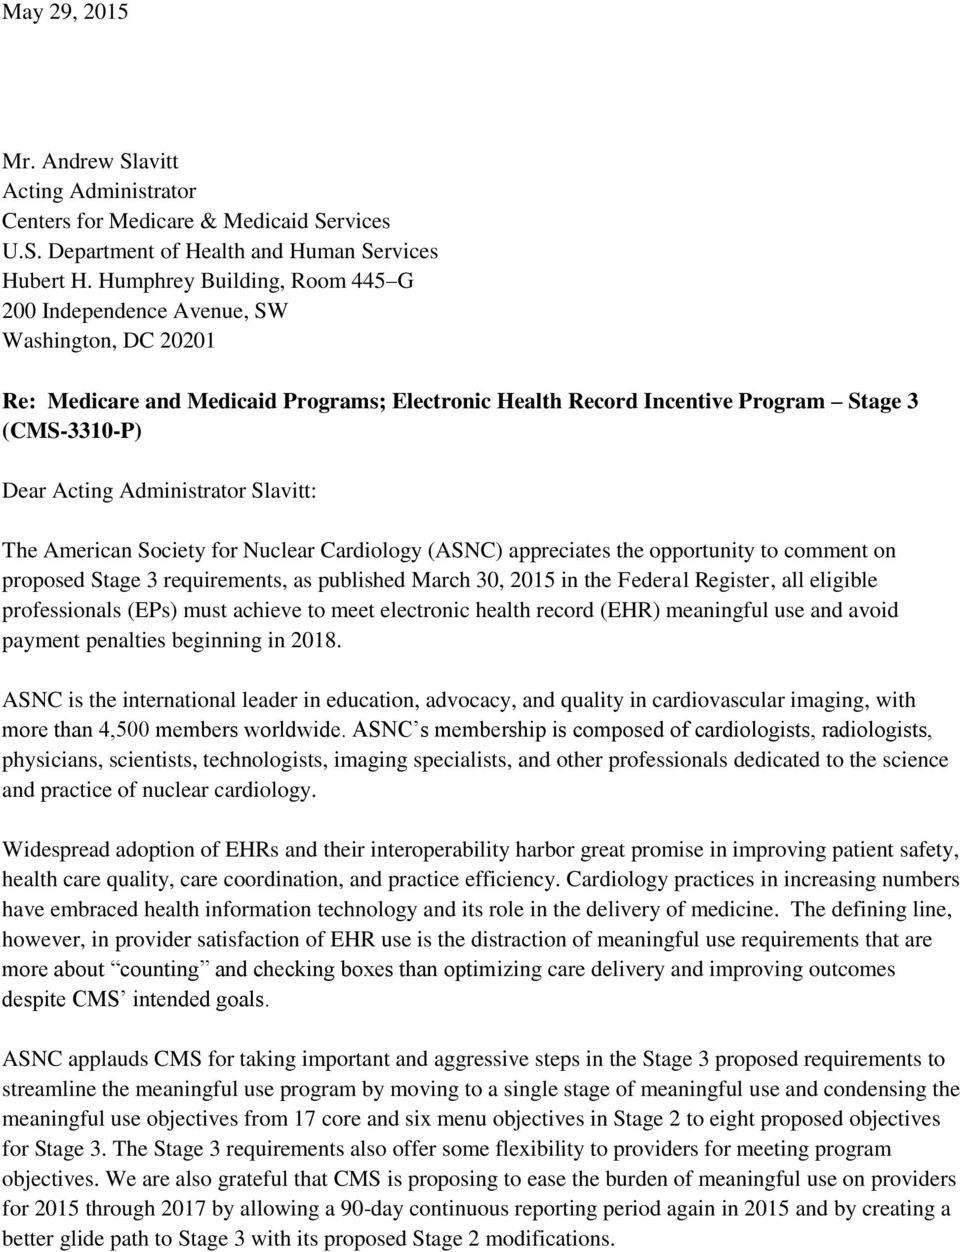 Administrator Slavitt: The American Society for Nuclear Cardiology (ASNC) appreciates the opportunity to comment on proposed Stage 3 requirements, as published March 30, 2015 in the Federal Register,